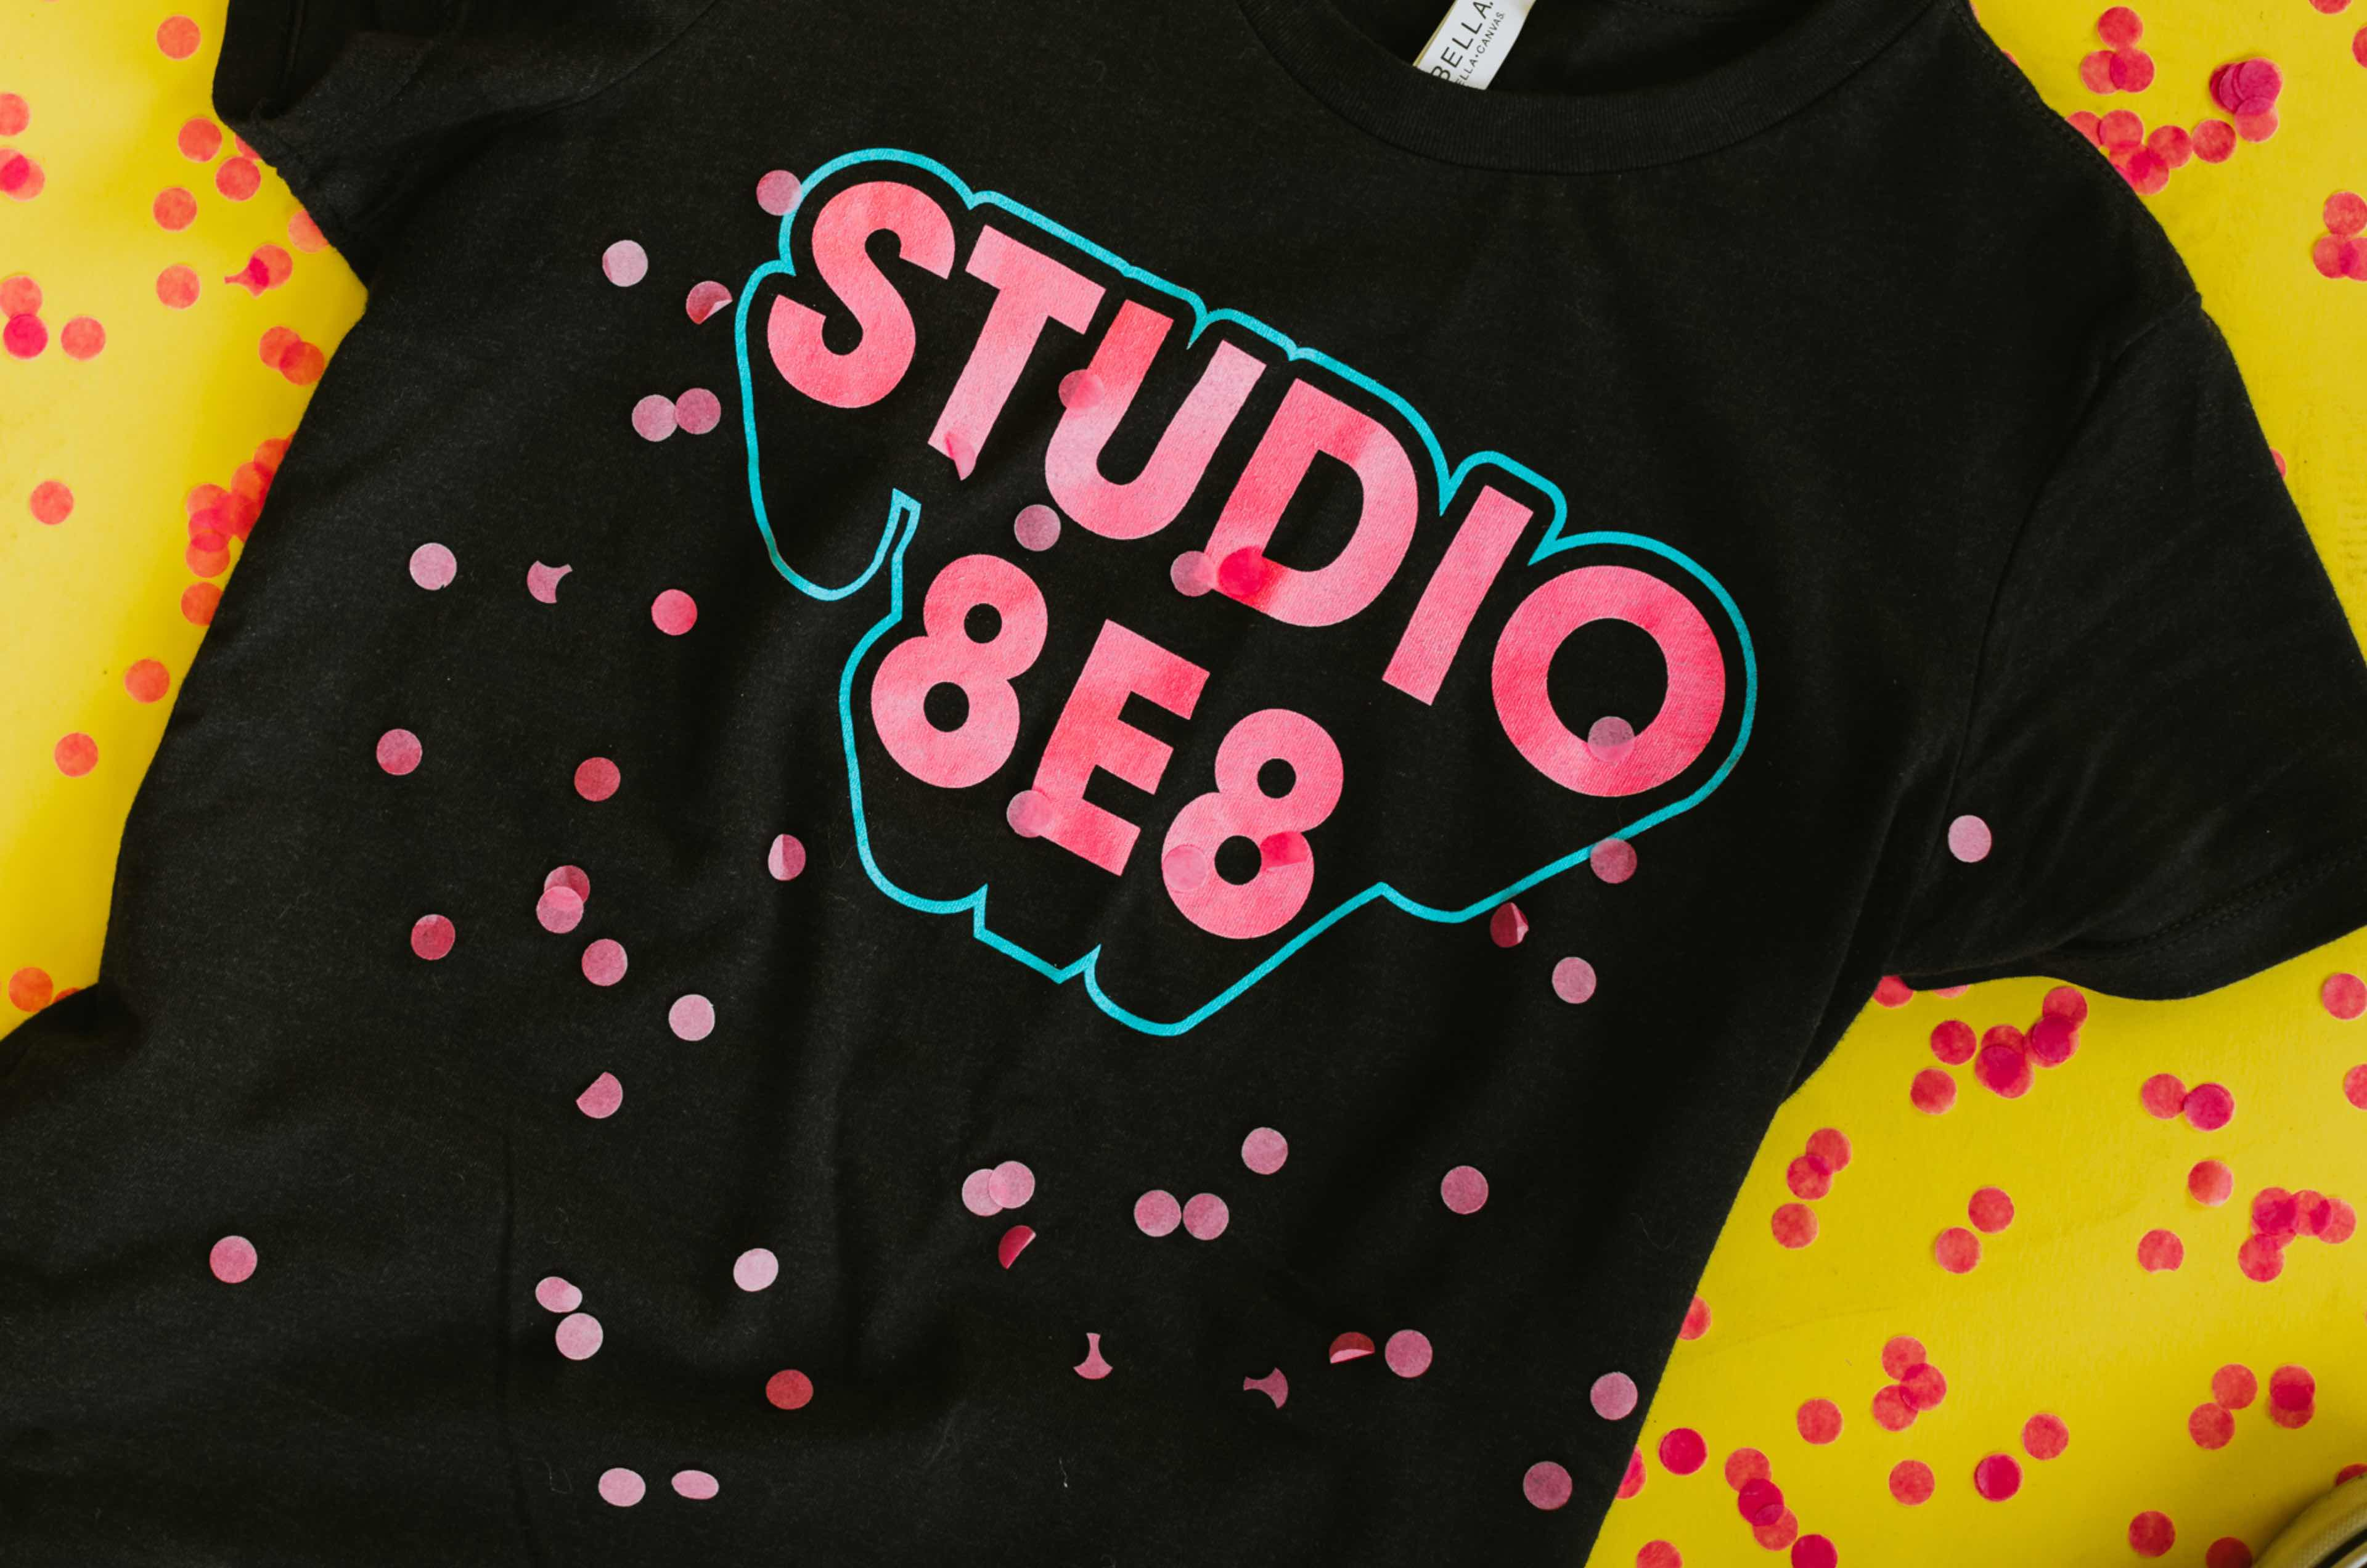 Photo of a dark gray shirt with Studio 8E8 printed on it in pink letters with a blue outline